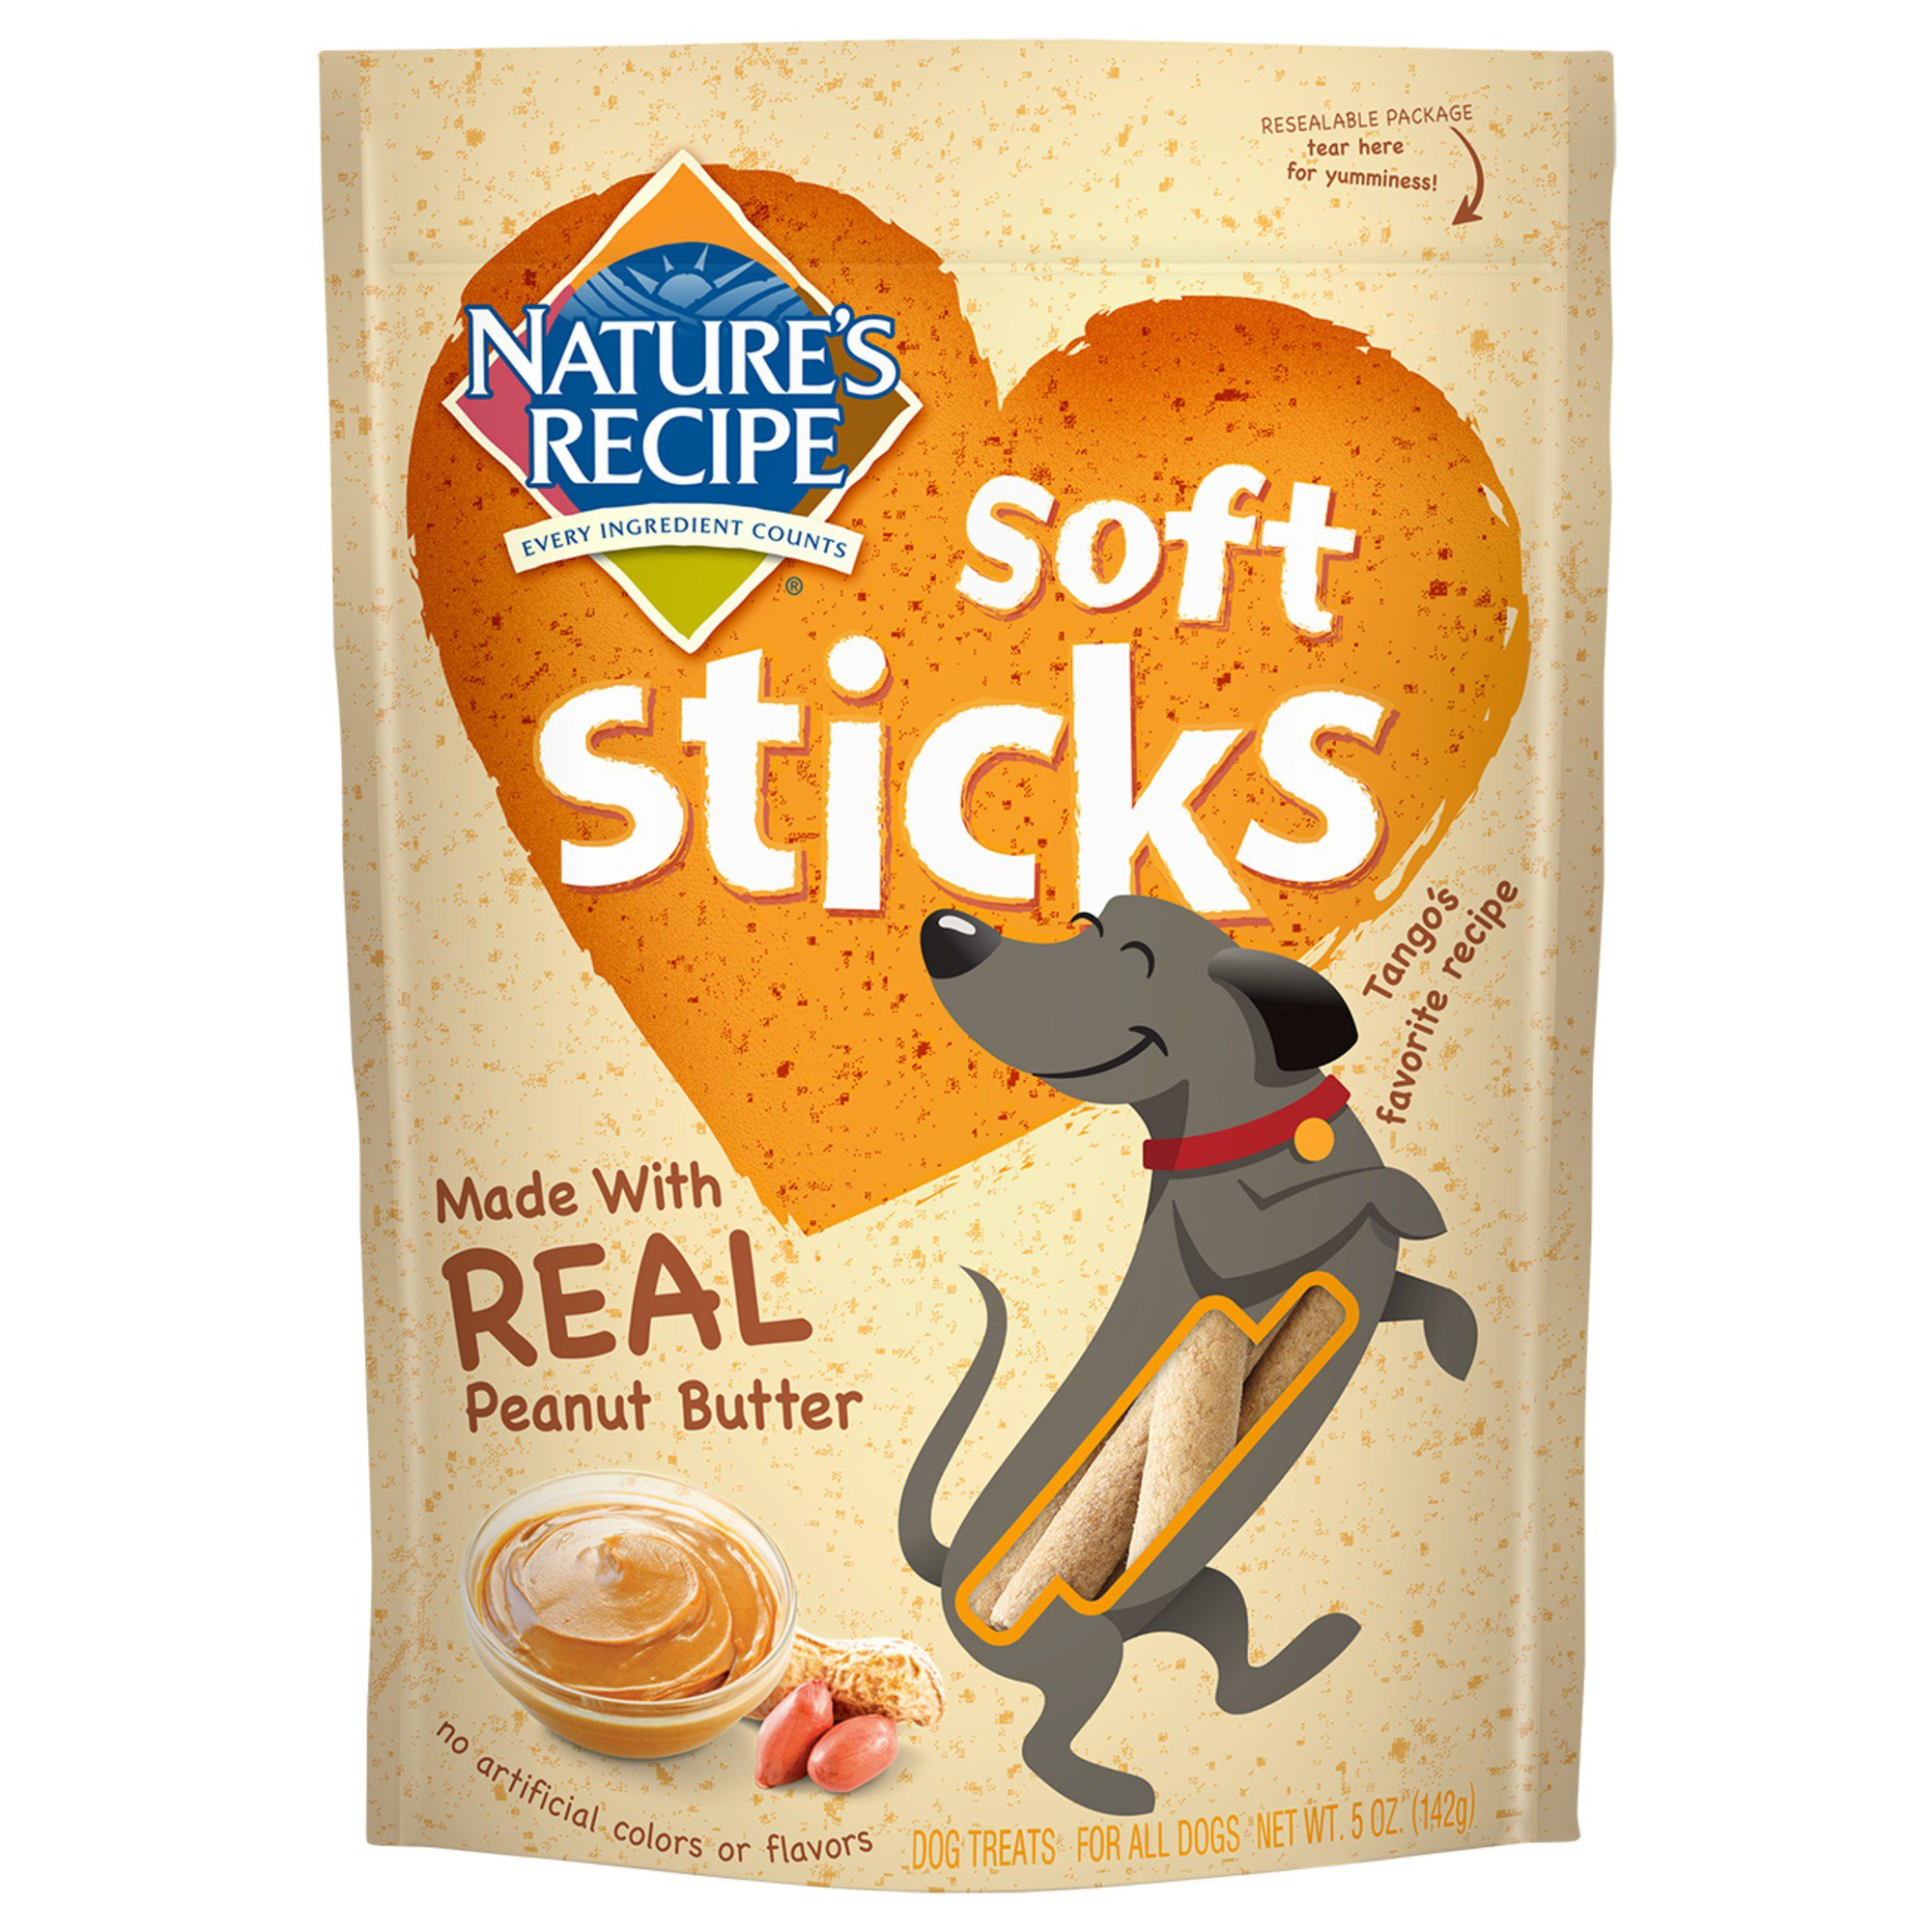 Nature's Recipe Soft Sticks Peanut Butter Dog Treats